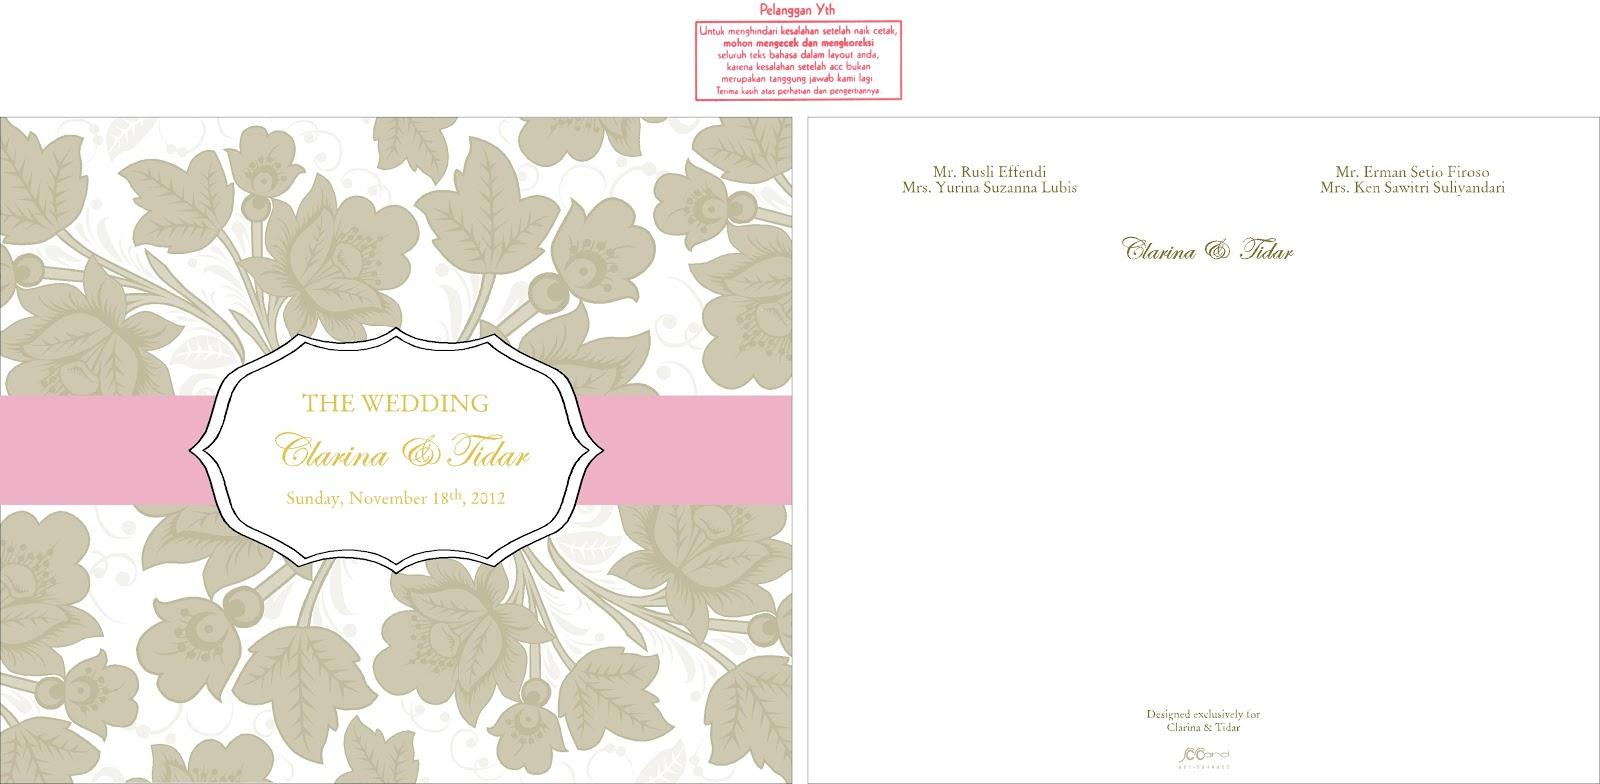 Tinkerwish 18 11 12 the invitation by cc card 18 11 12 the invitation by cc card stopboris Gallery